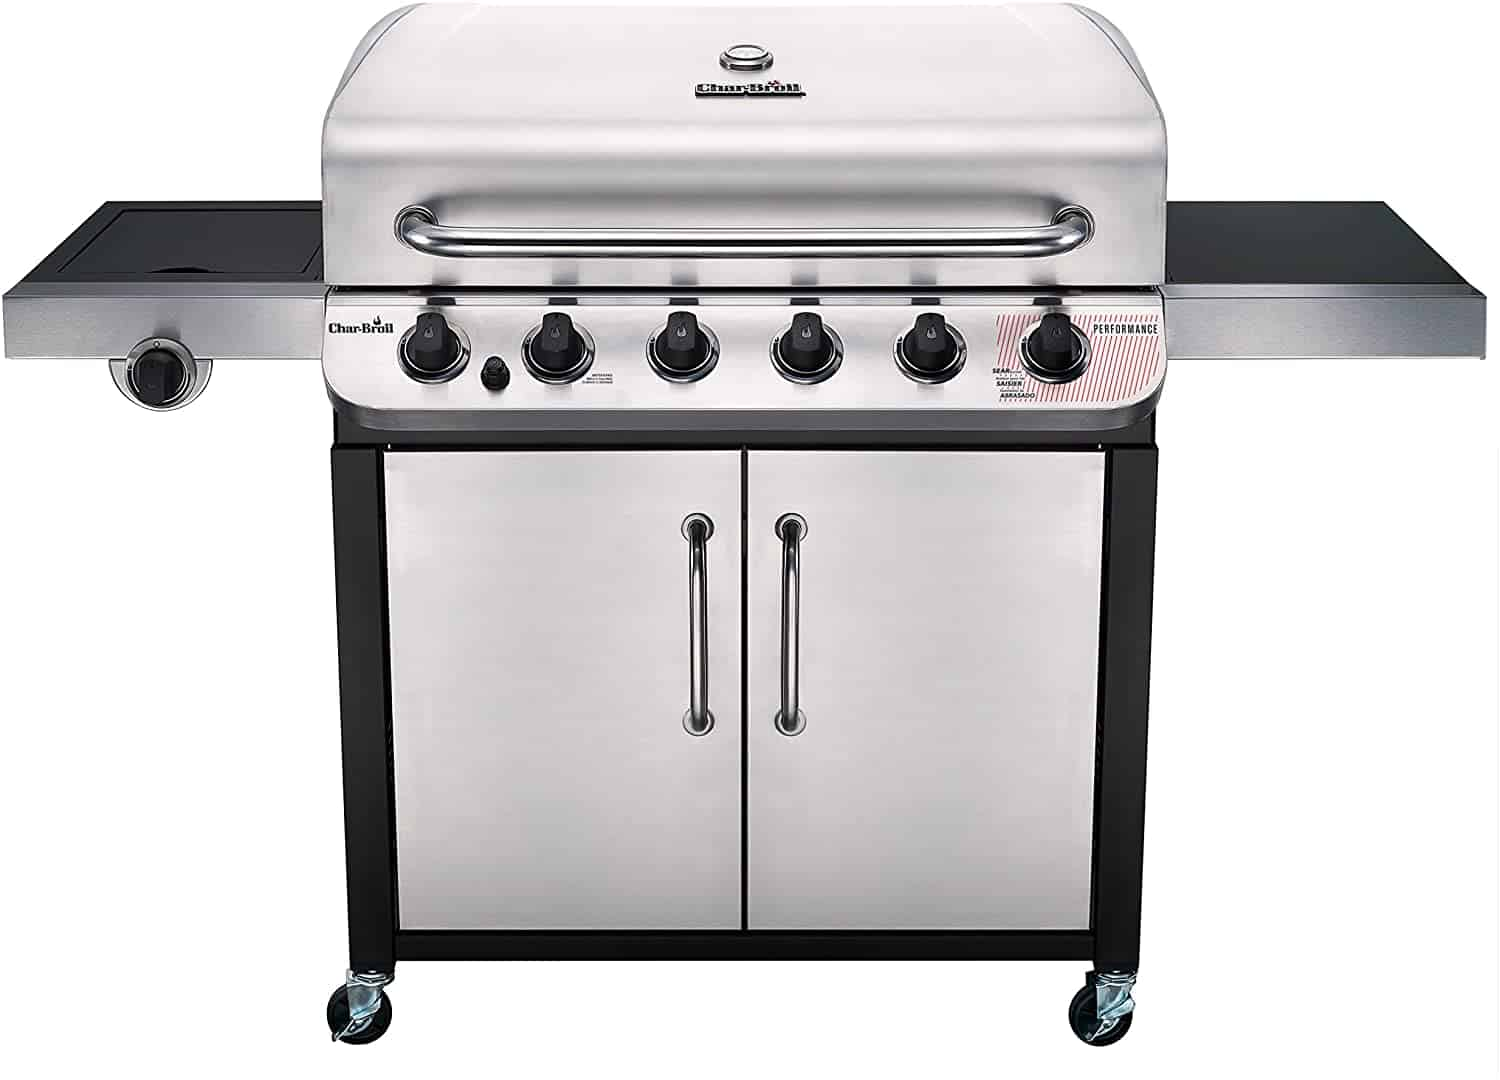 Char-Broil Performance 650 6-Burner Propane Grill